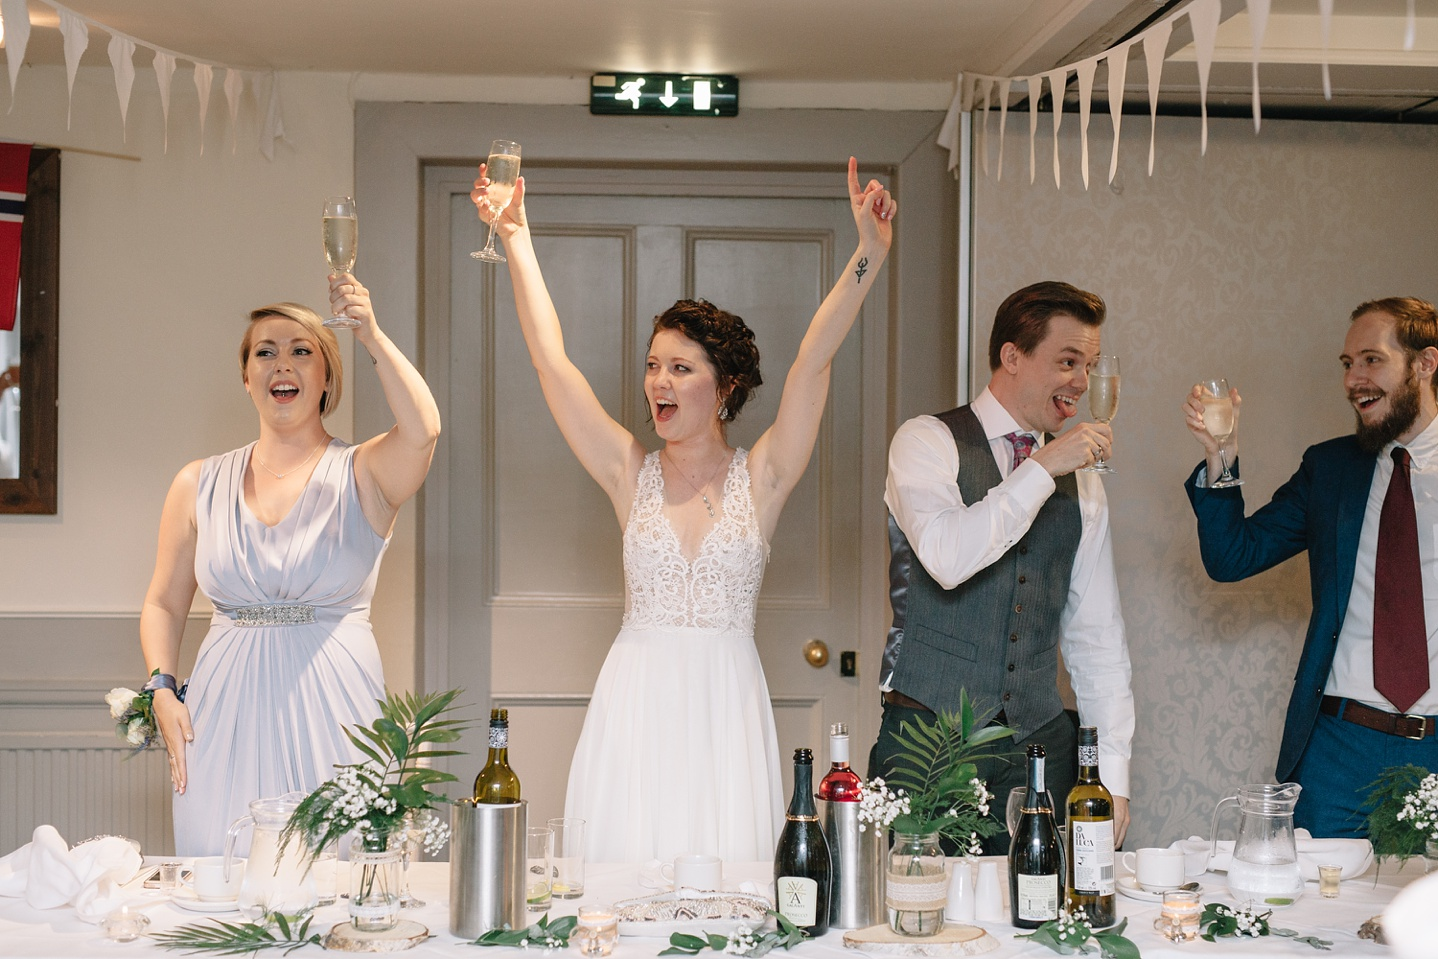 """bride and groom celebrating with a """"yay"""" toast during speeches"""